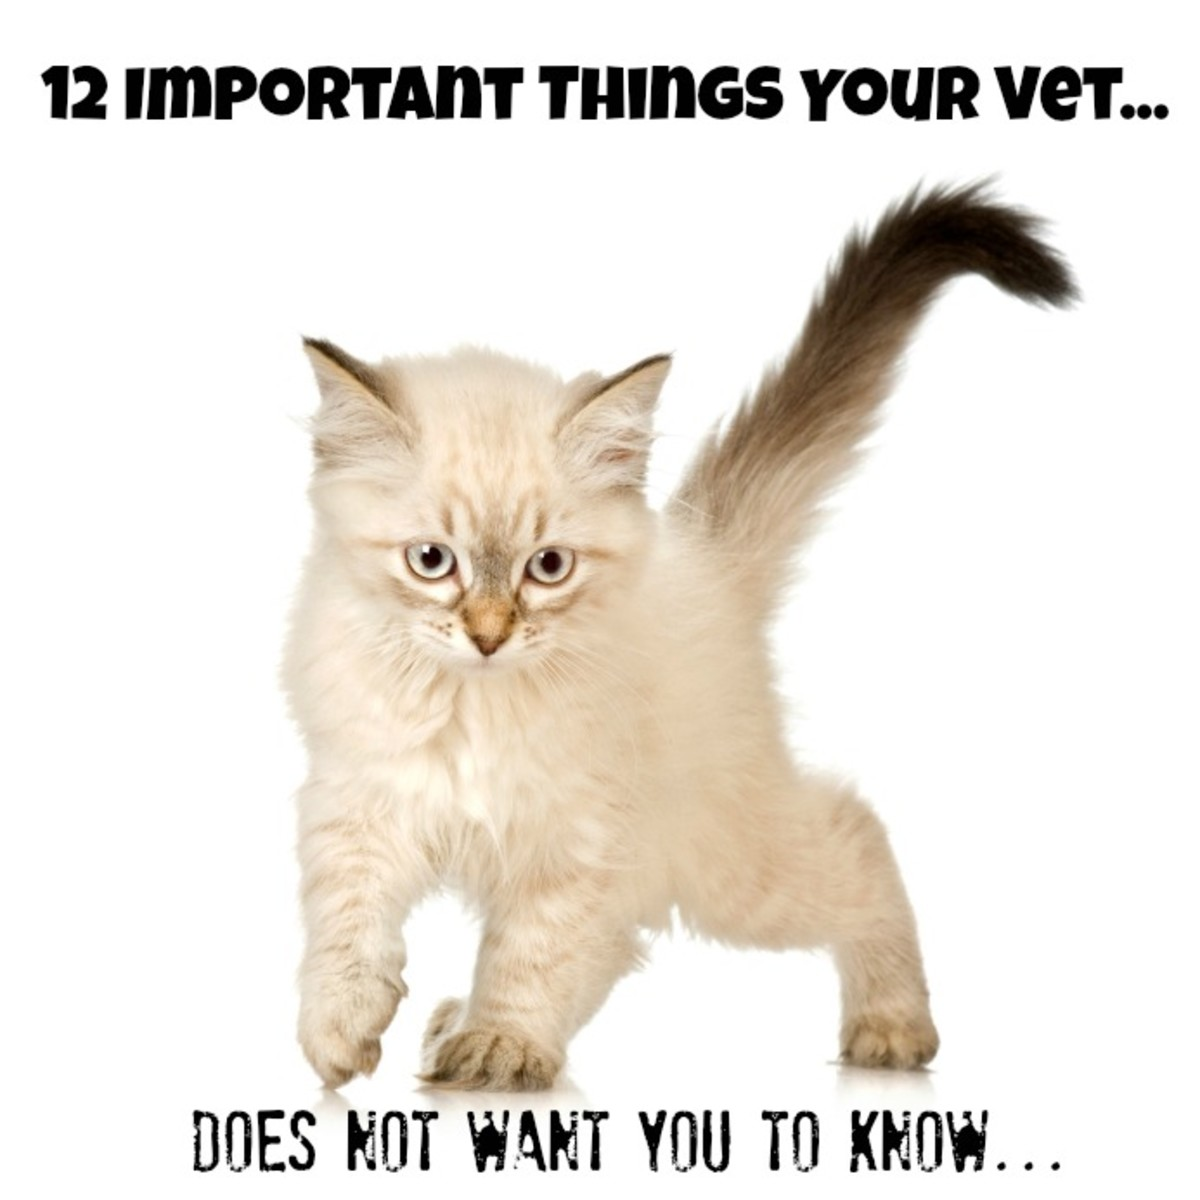 12-things-your-vet-does-not-want-you-to-know